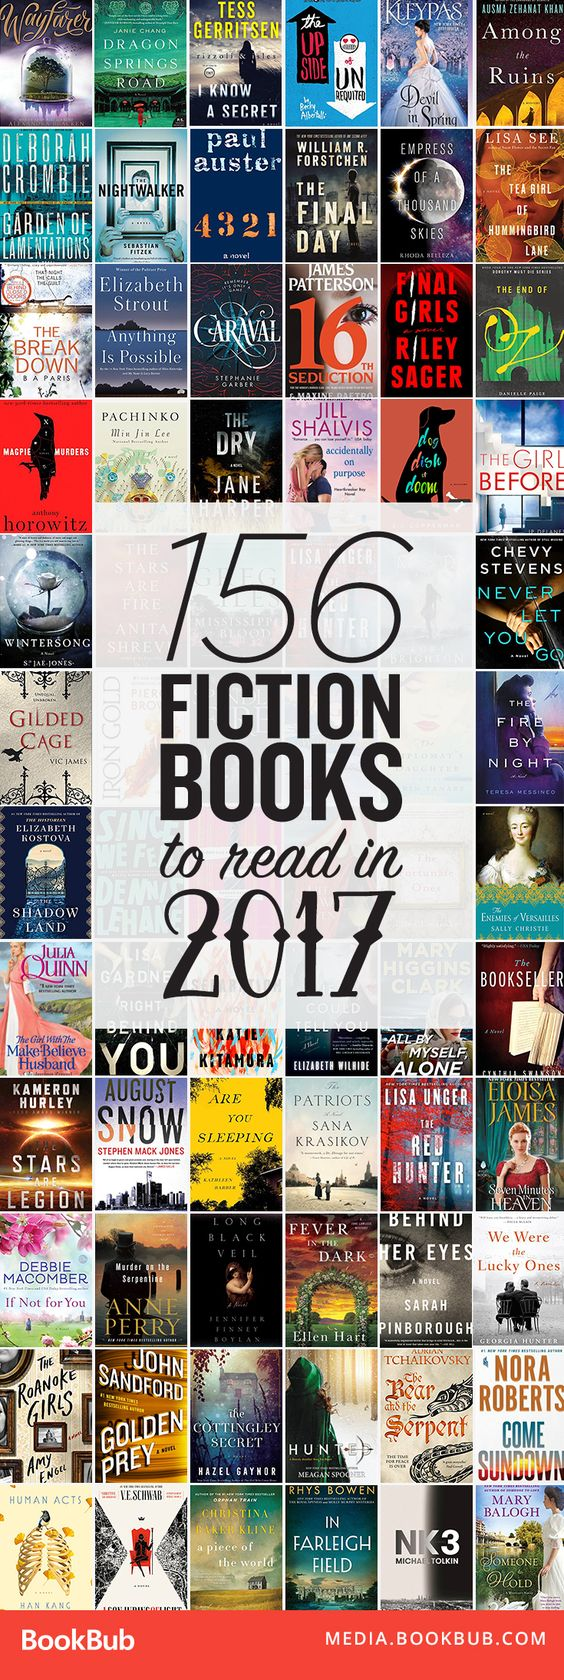 156 awesome books to read in 2017. Add all of these to your 2017 reading list!: